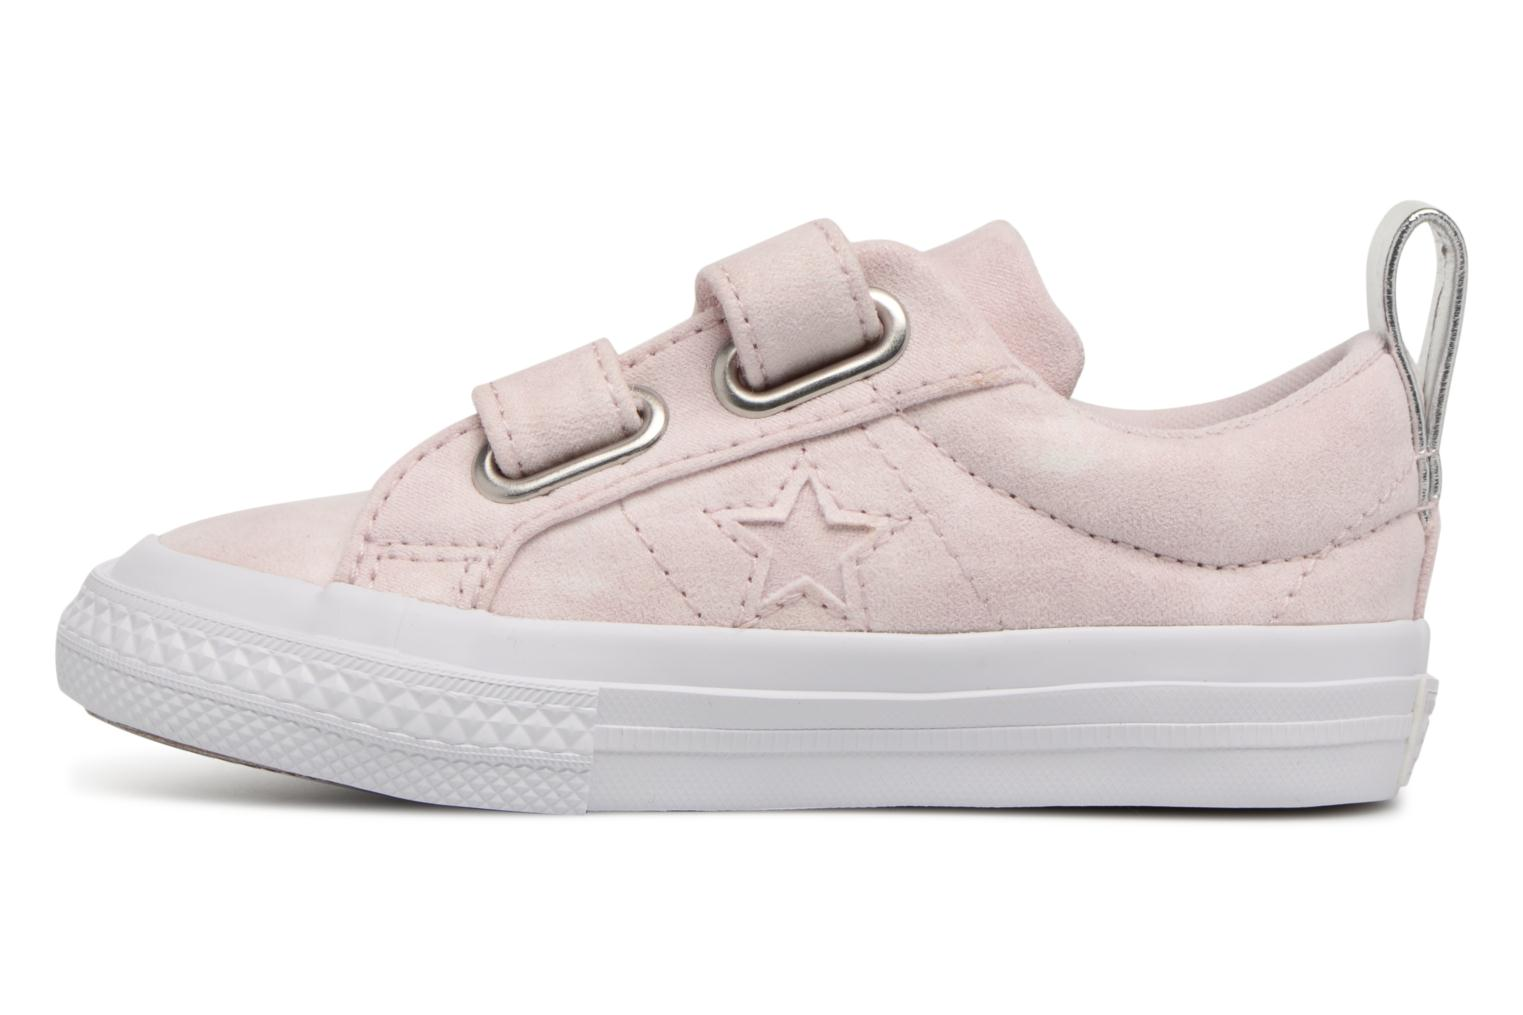 Barely Rose/Barely Rose/White Converse One Star 2V Ox Peached Wash (Rose)